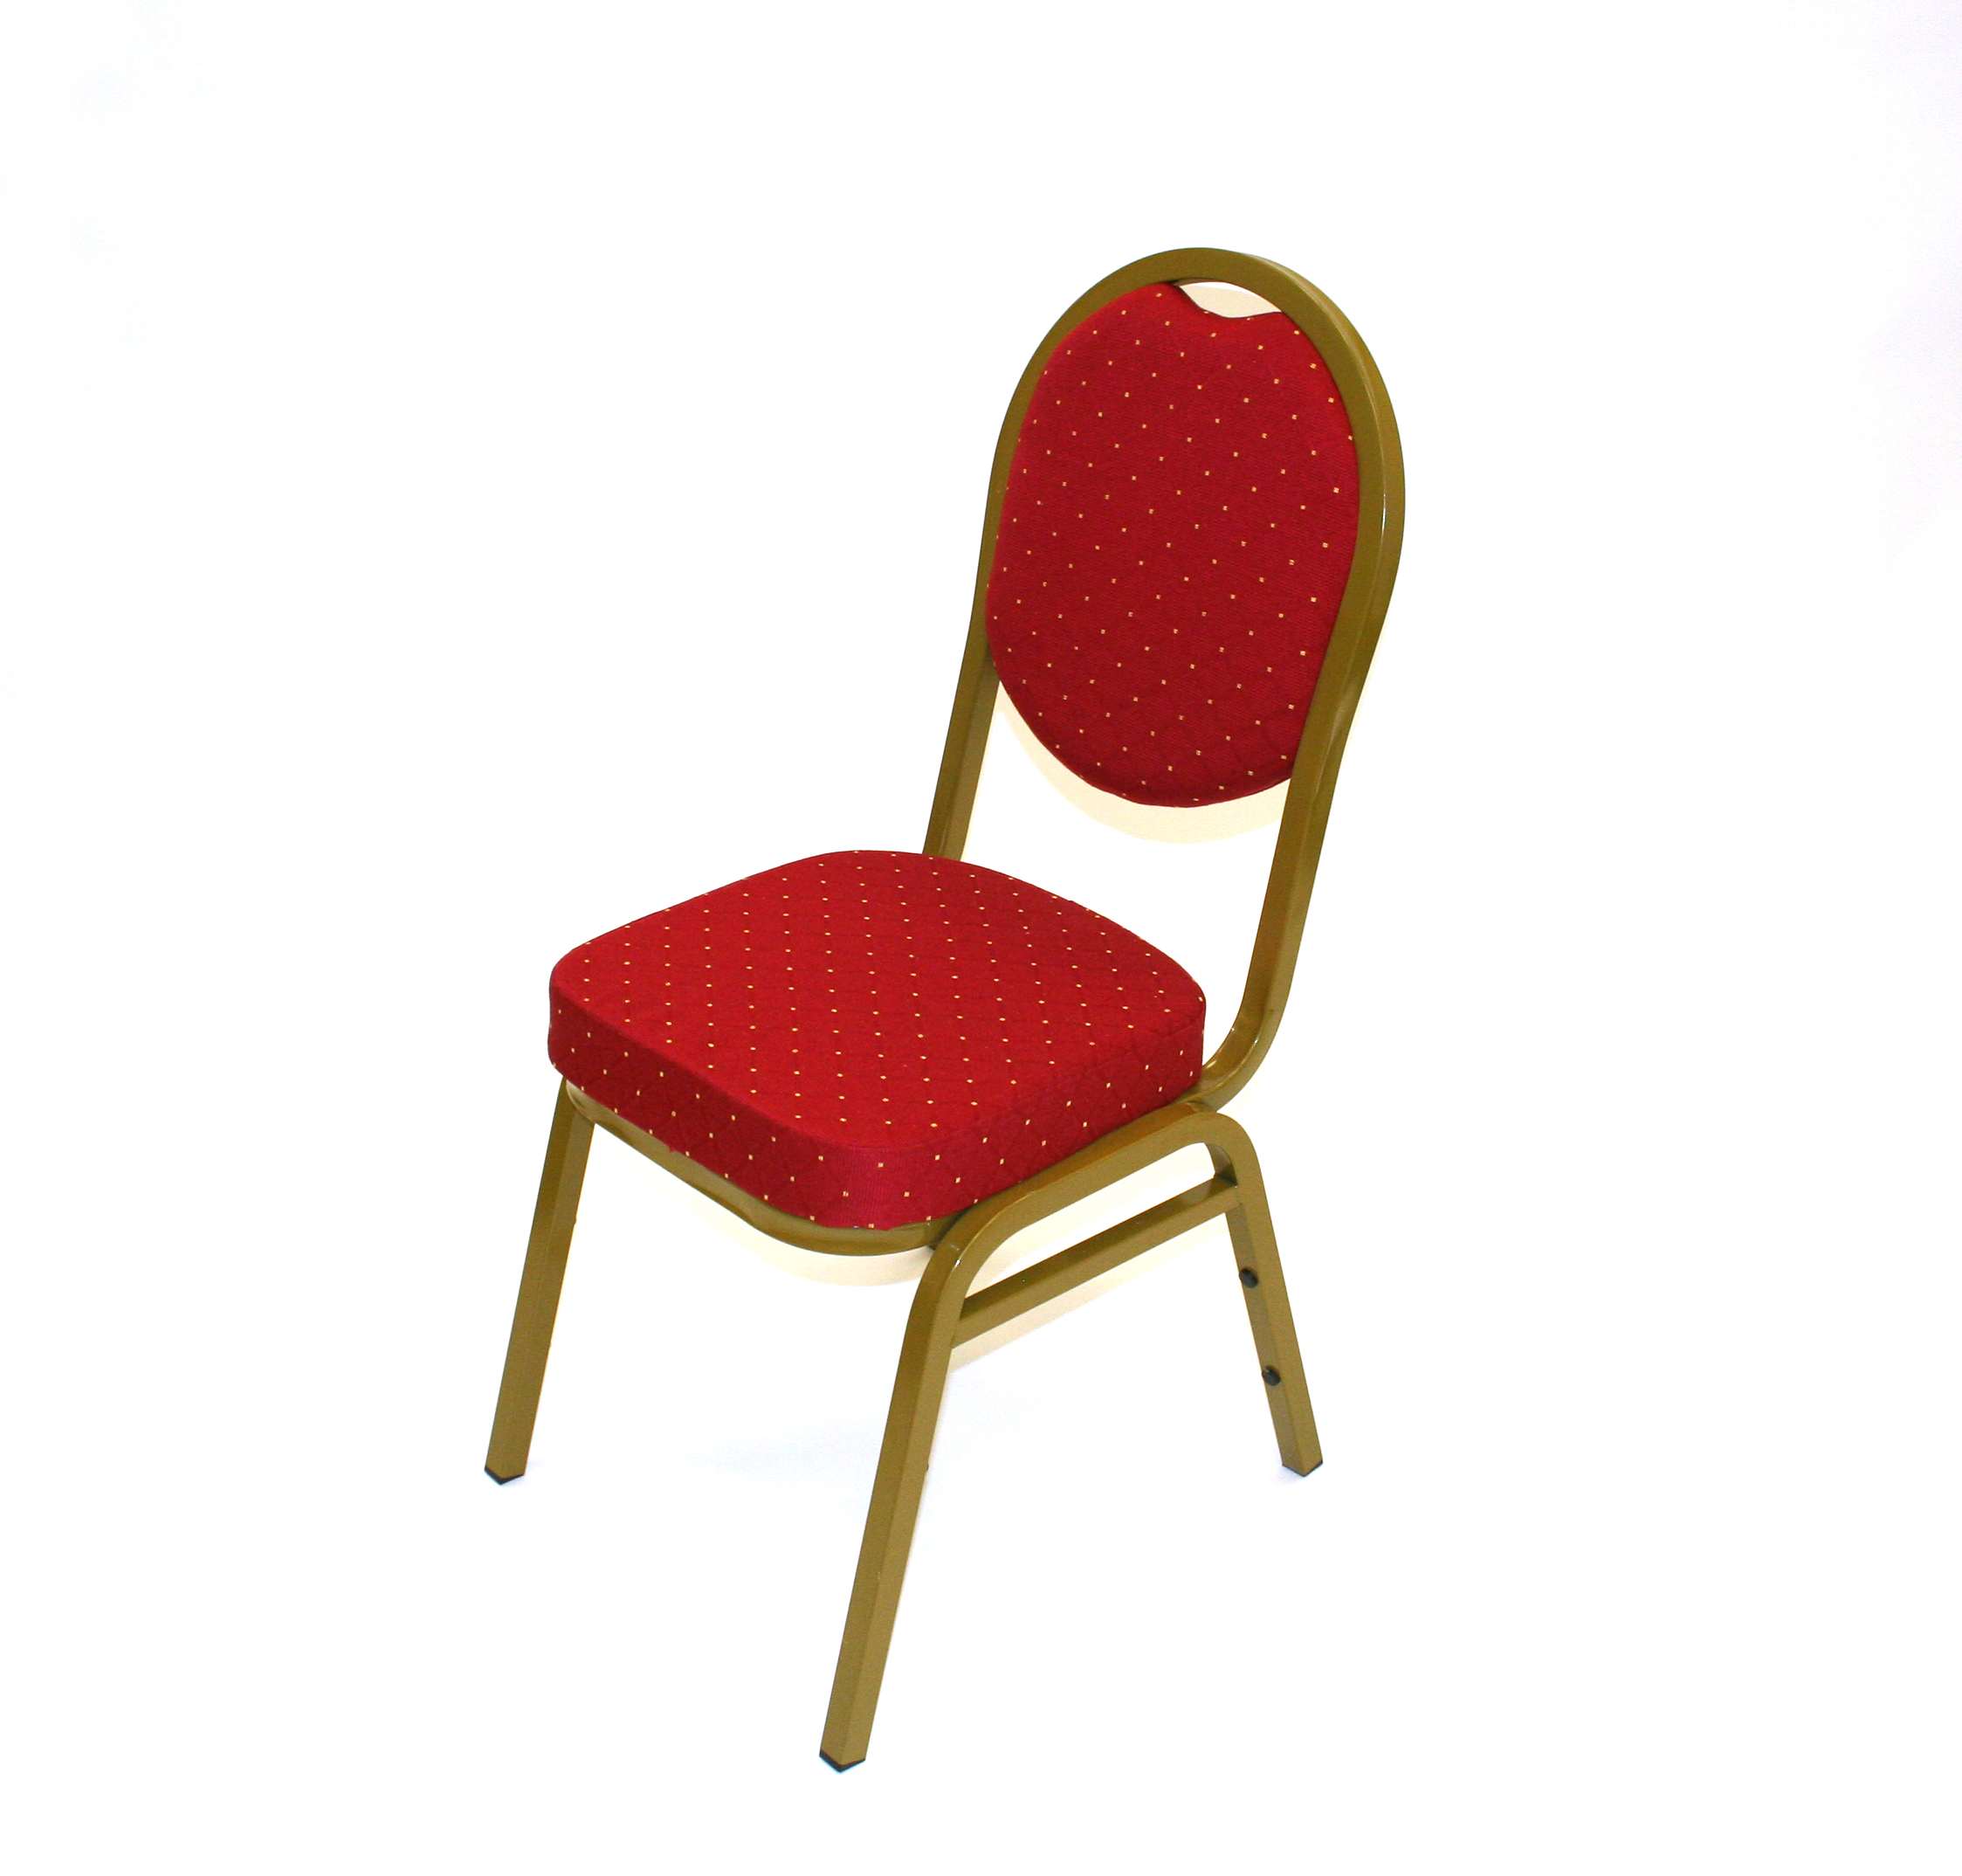 Red Banqueting Chair Hire - Weddings, Events, Banqueting ...